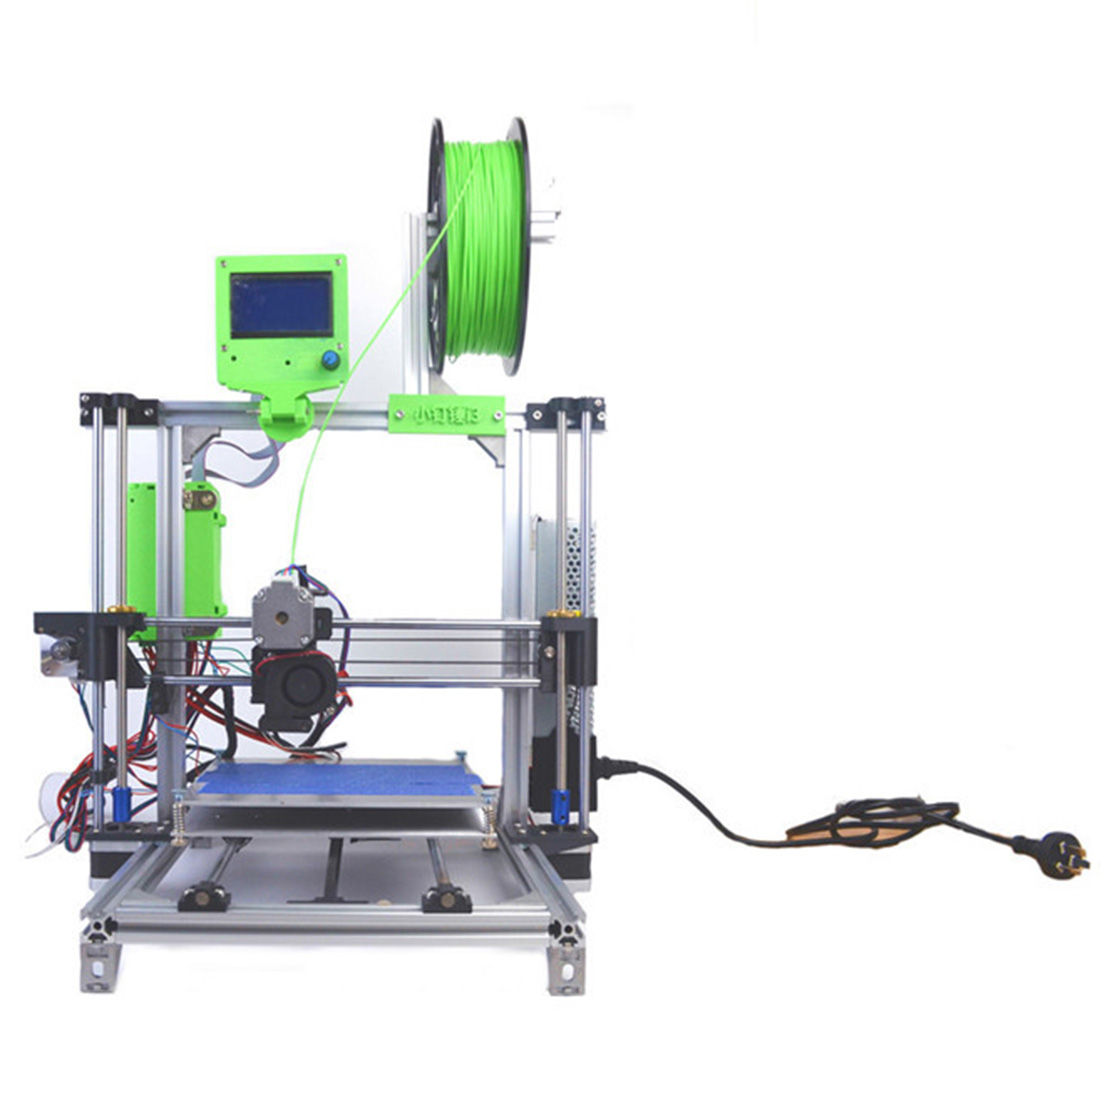 Children Adult DIY 3D Printer Upgraded Robot Aluminum Frame Printing Kit (With Installation Instructions)